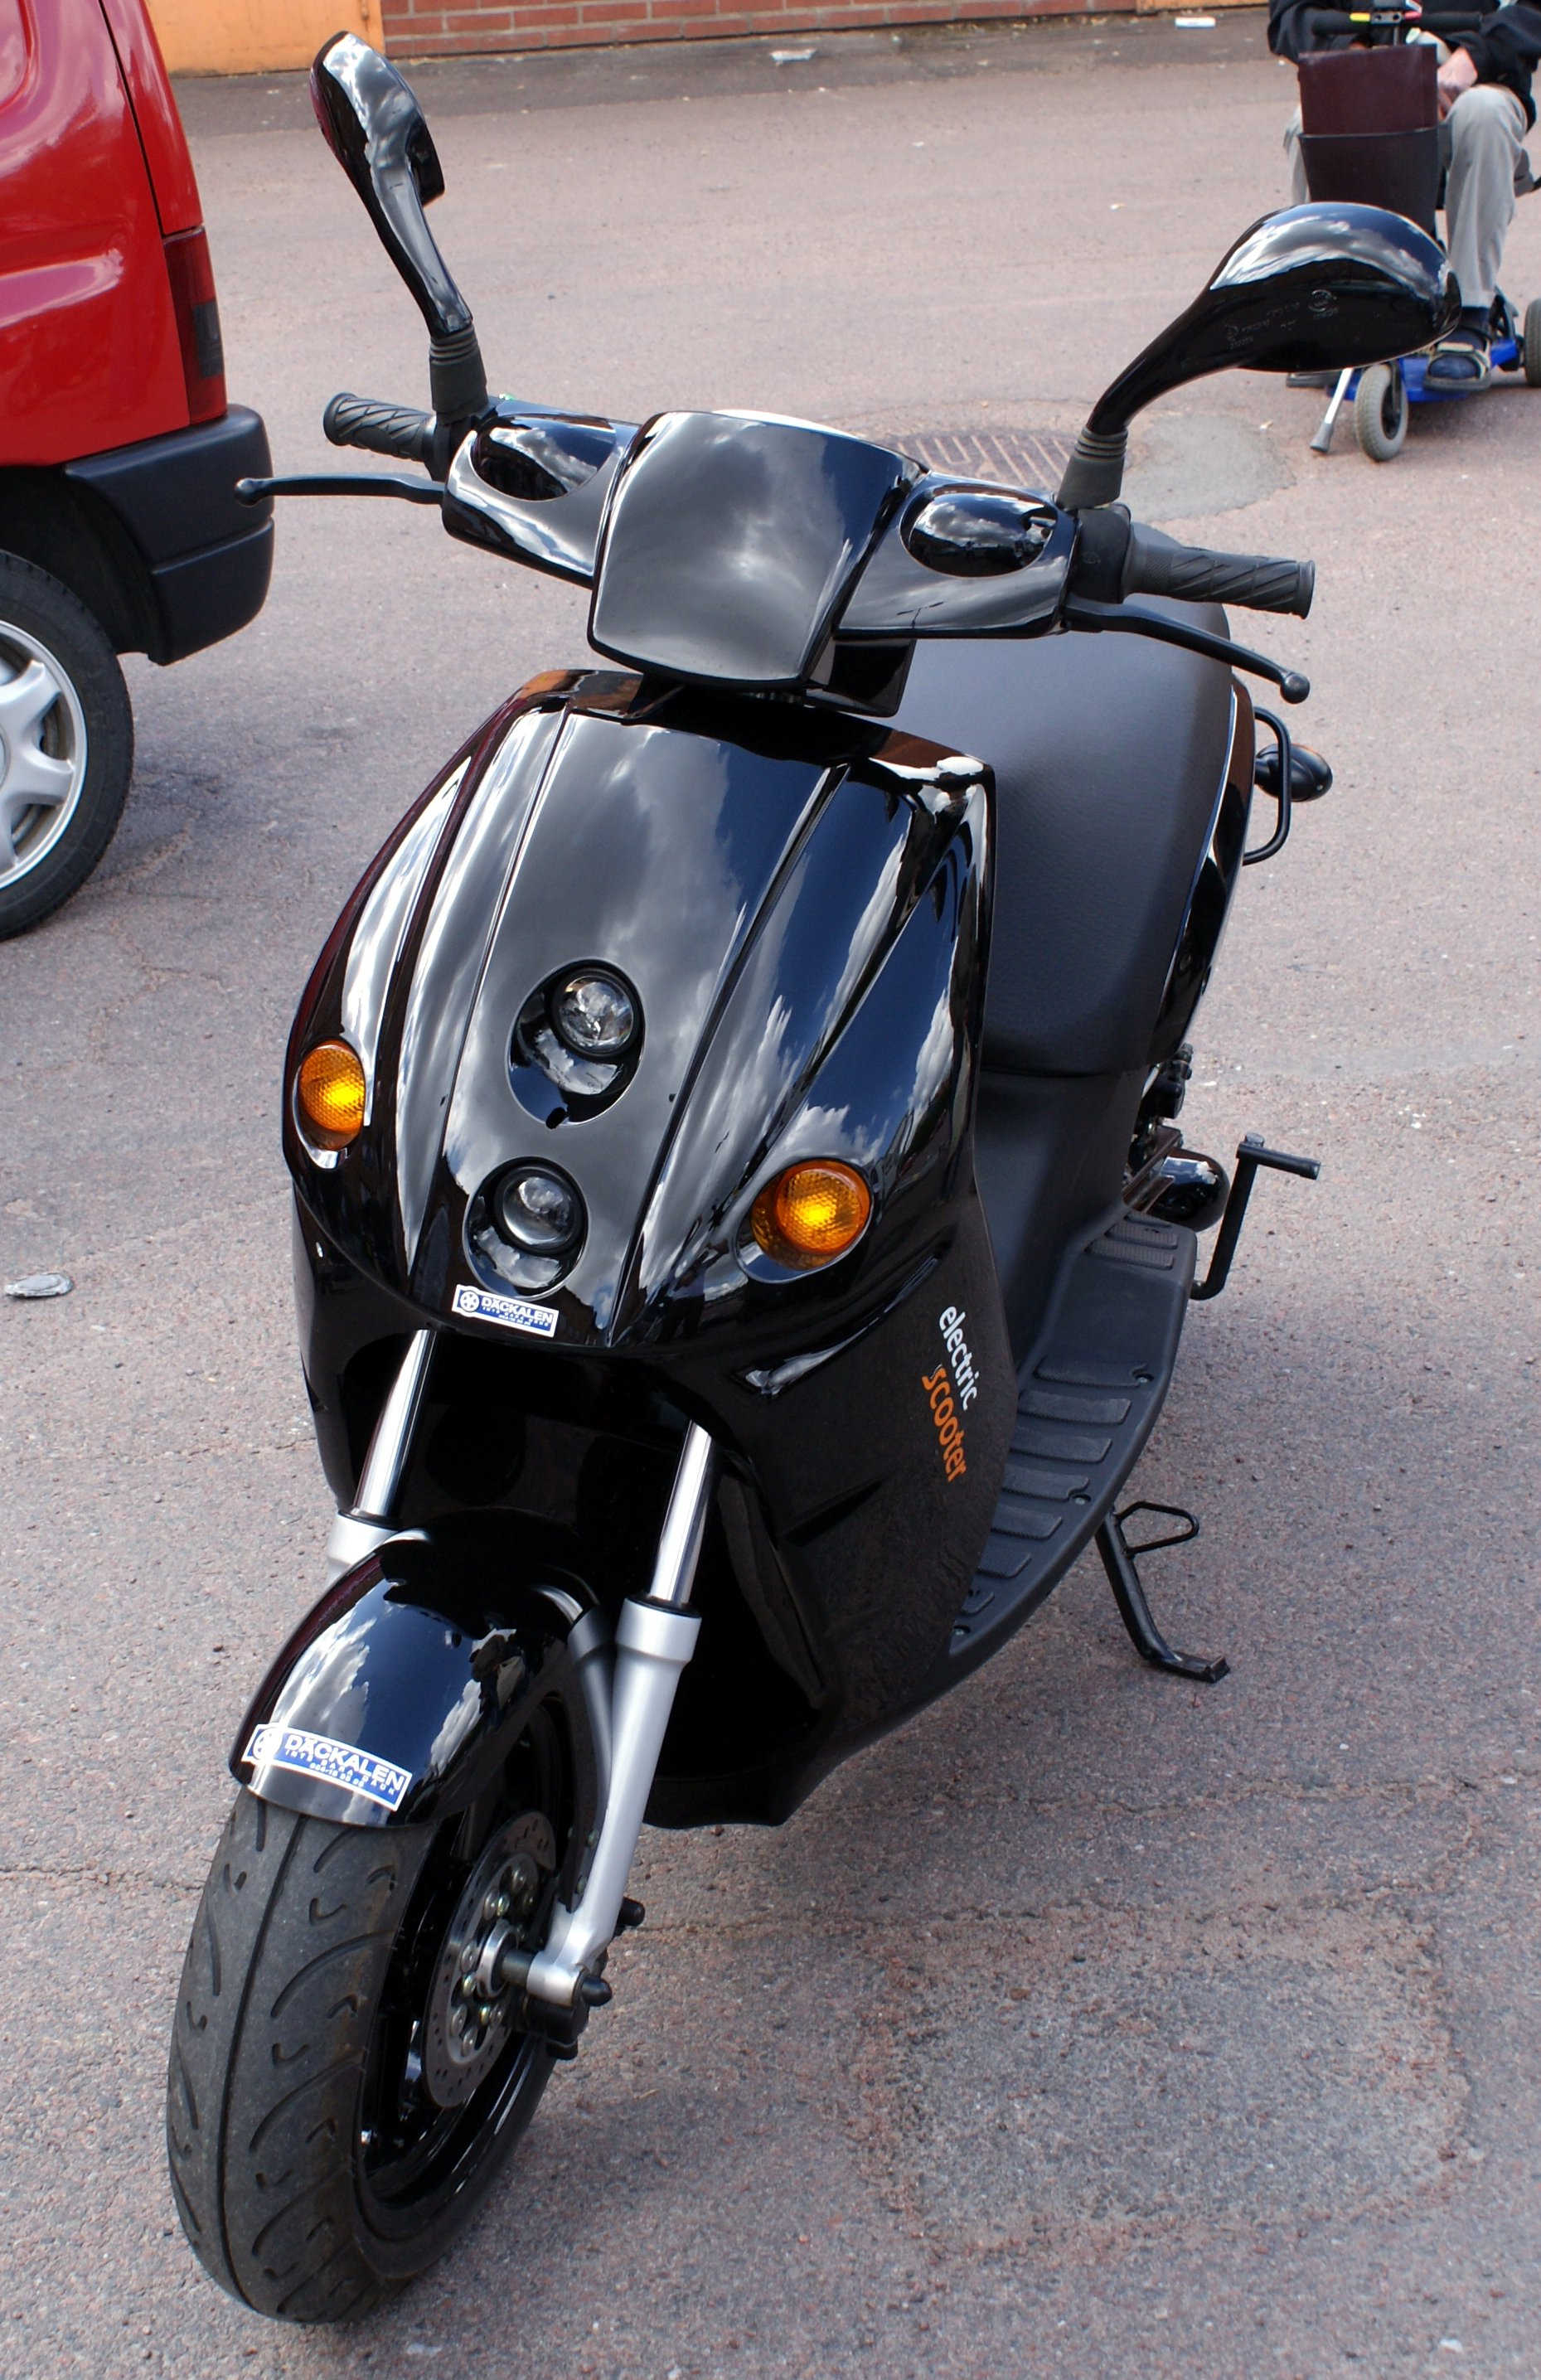 Why The Elmoped Is Worth the Investment?